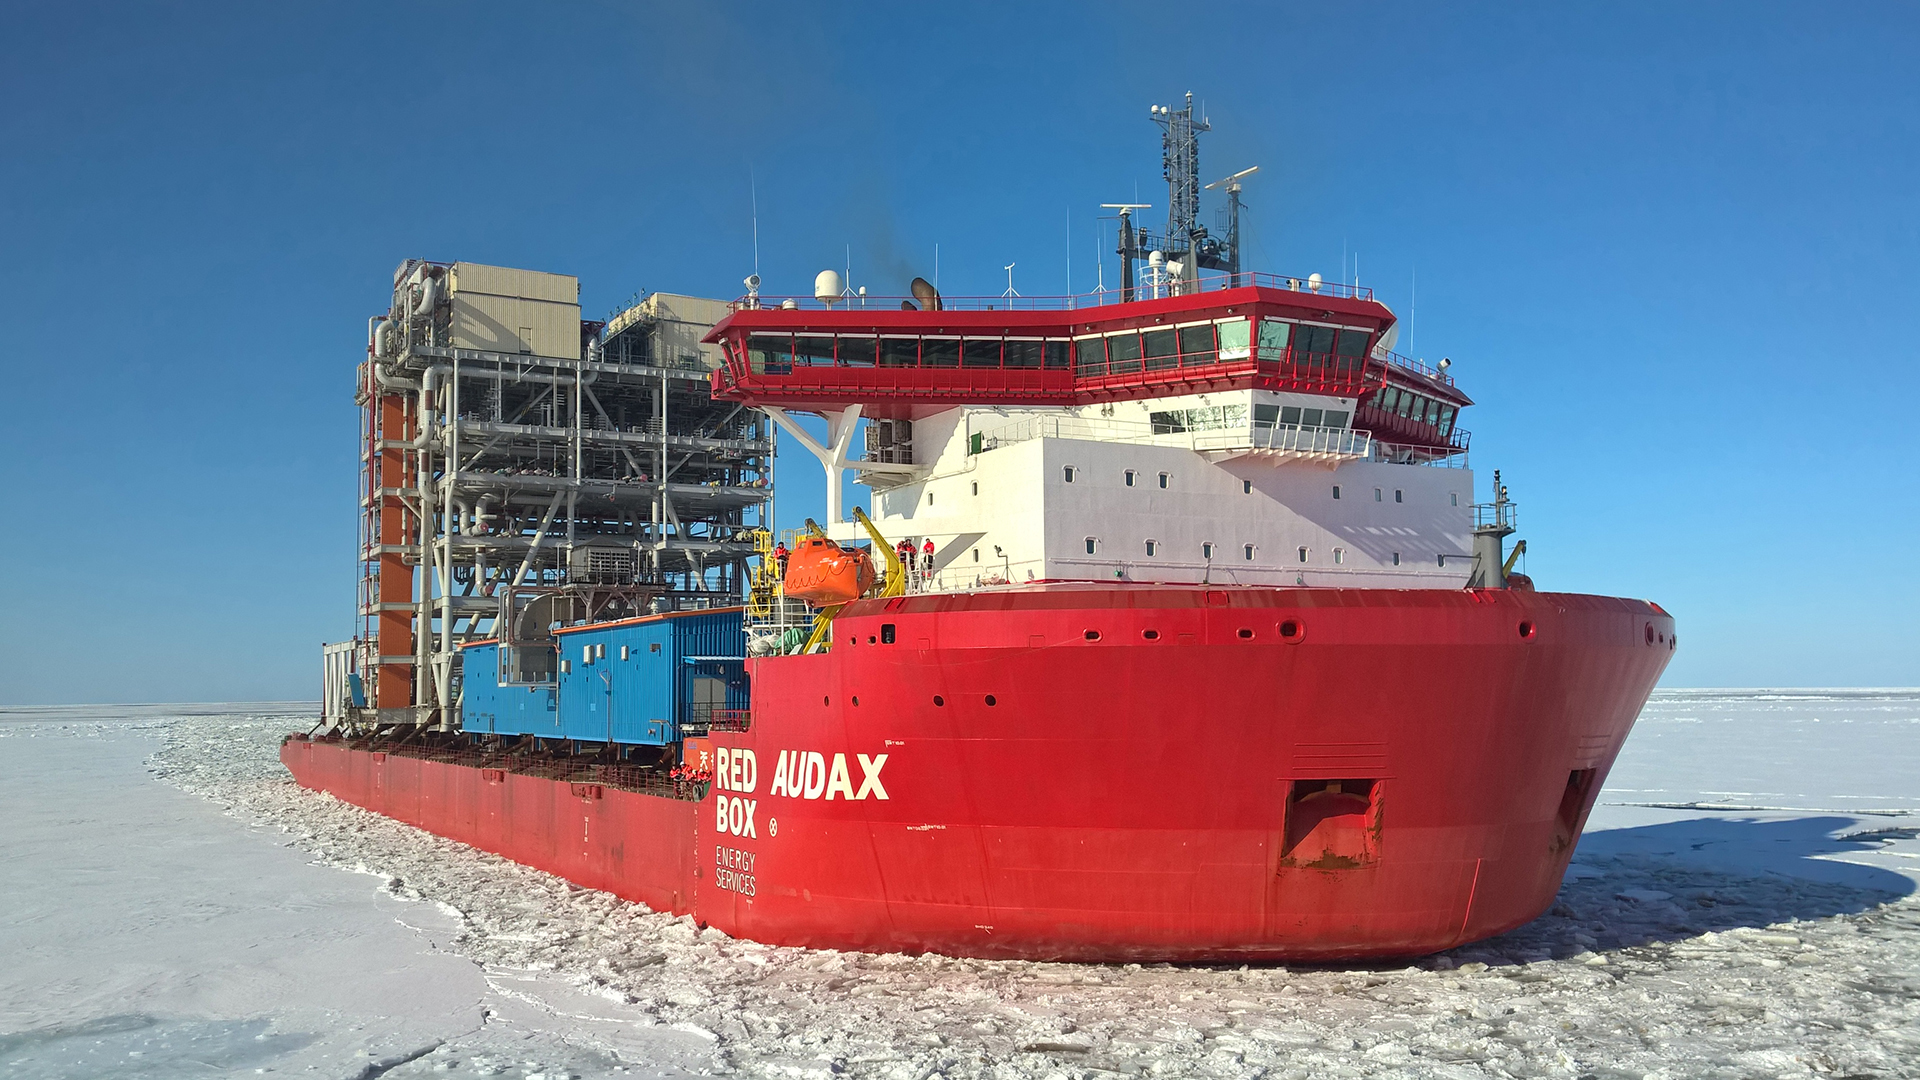 Audax module carrier - credit Aker Arctic Technology